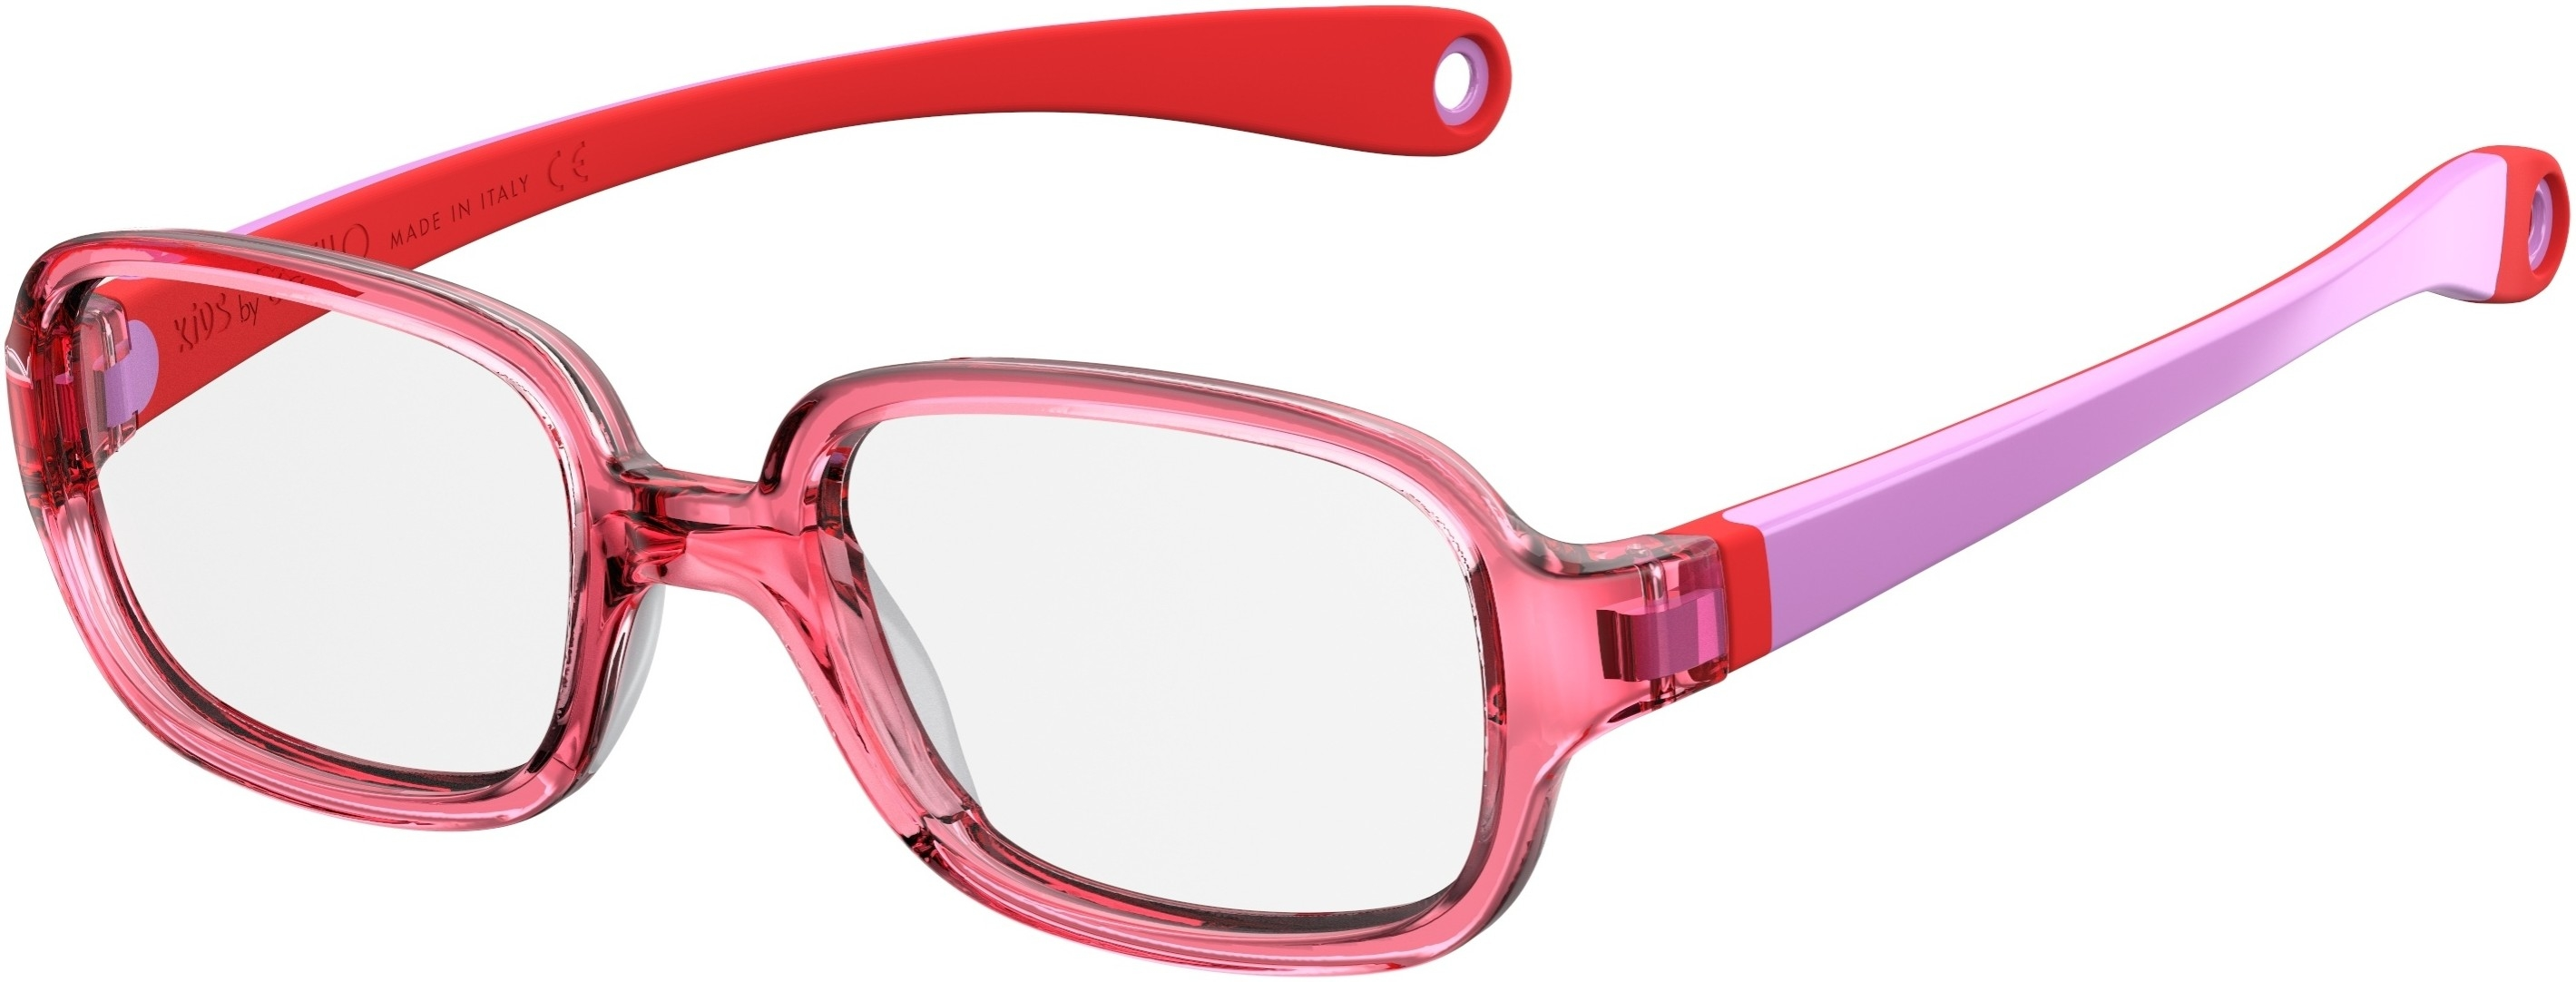 SAFILO KIDS 0003 in color 35J